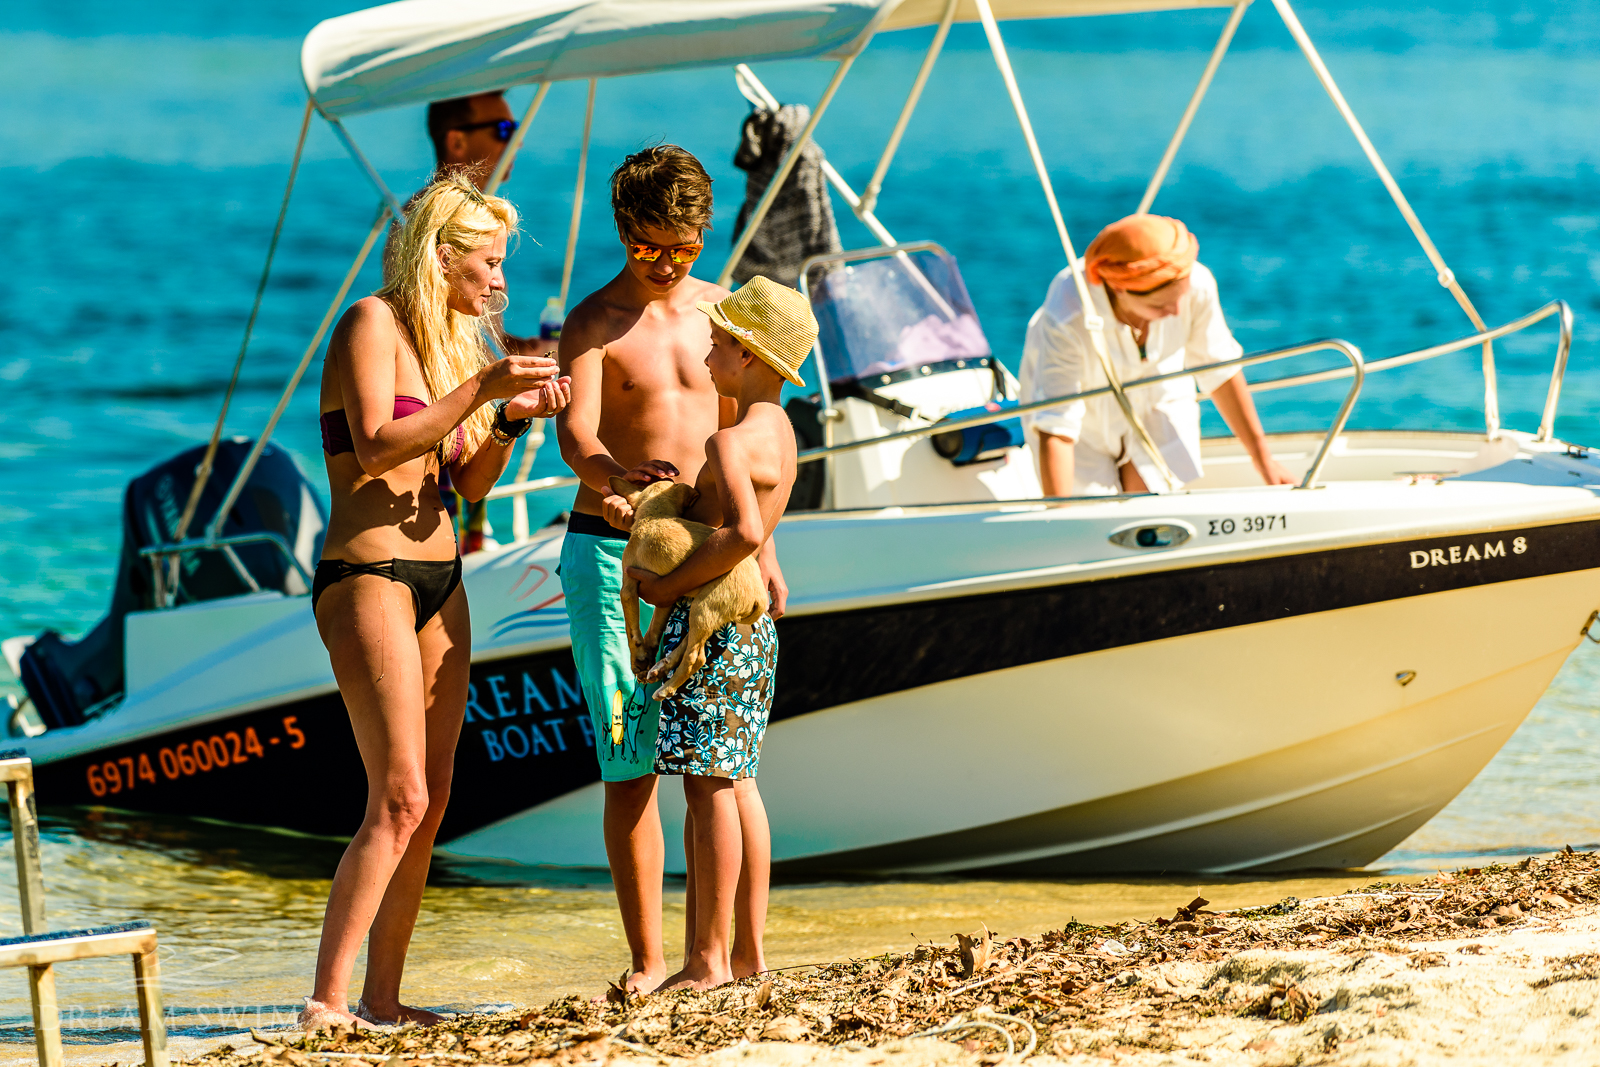 Dream Swim Boat Rental - Dream 8